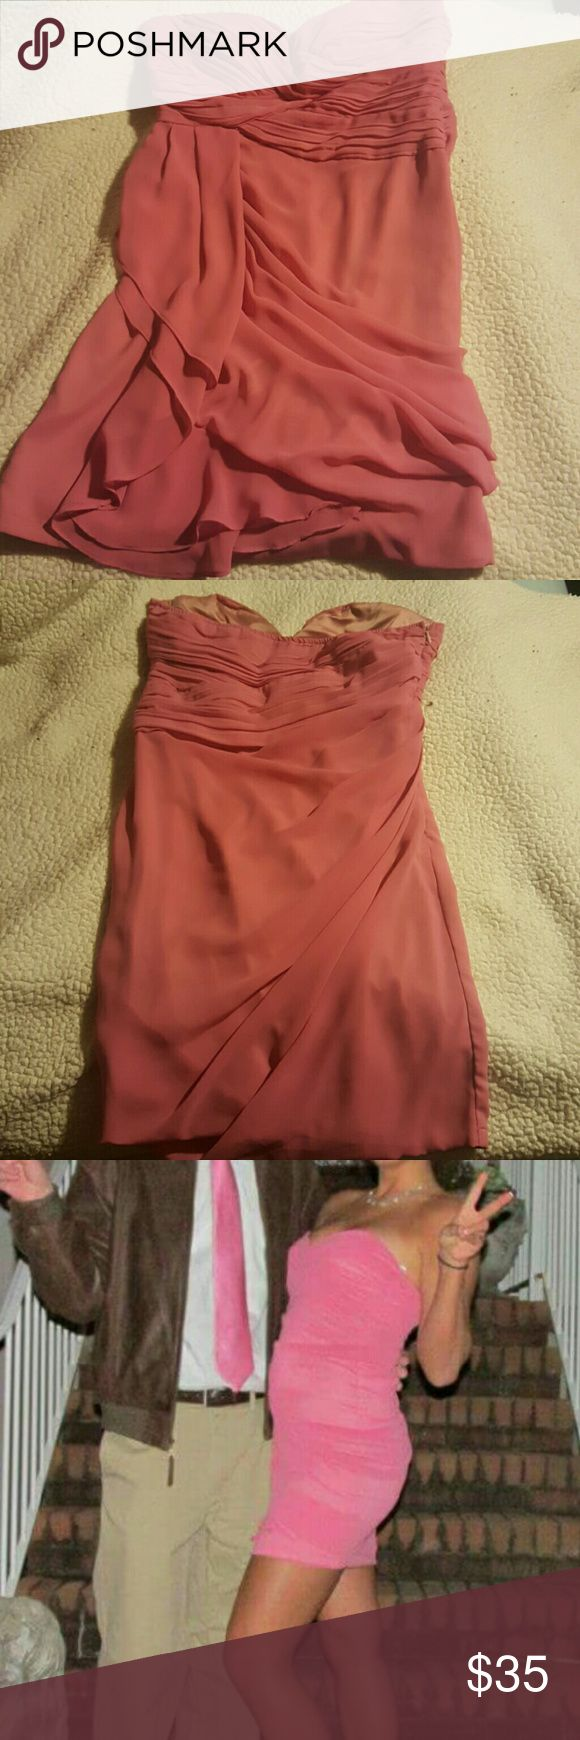 Formal Dress Very Sexy Pink Dress worn once to a Sadie Hawkins Dance. Perfect for a Valentine or Sadies dance. The color is Mauve but the dark skin and the flash makes the dress look bright pink in the model photos. It looks great on. Minuet Dresses Prom